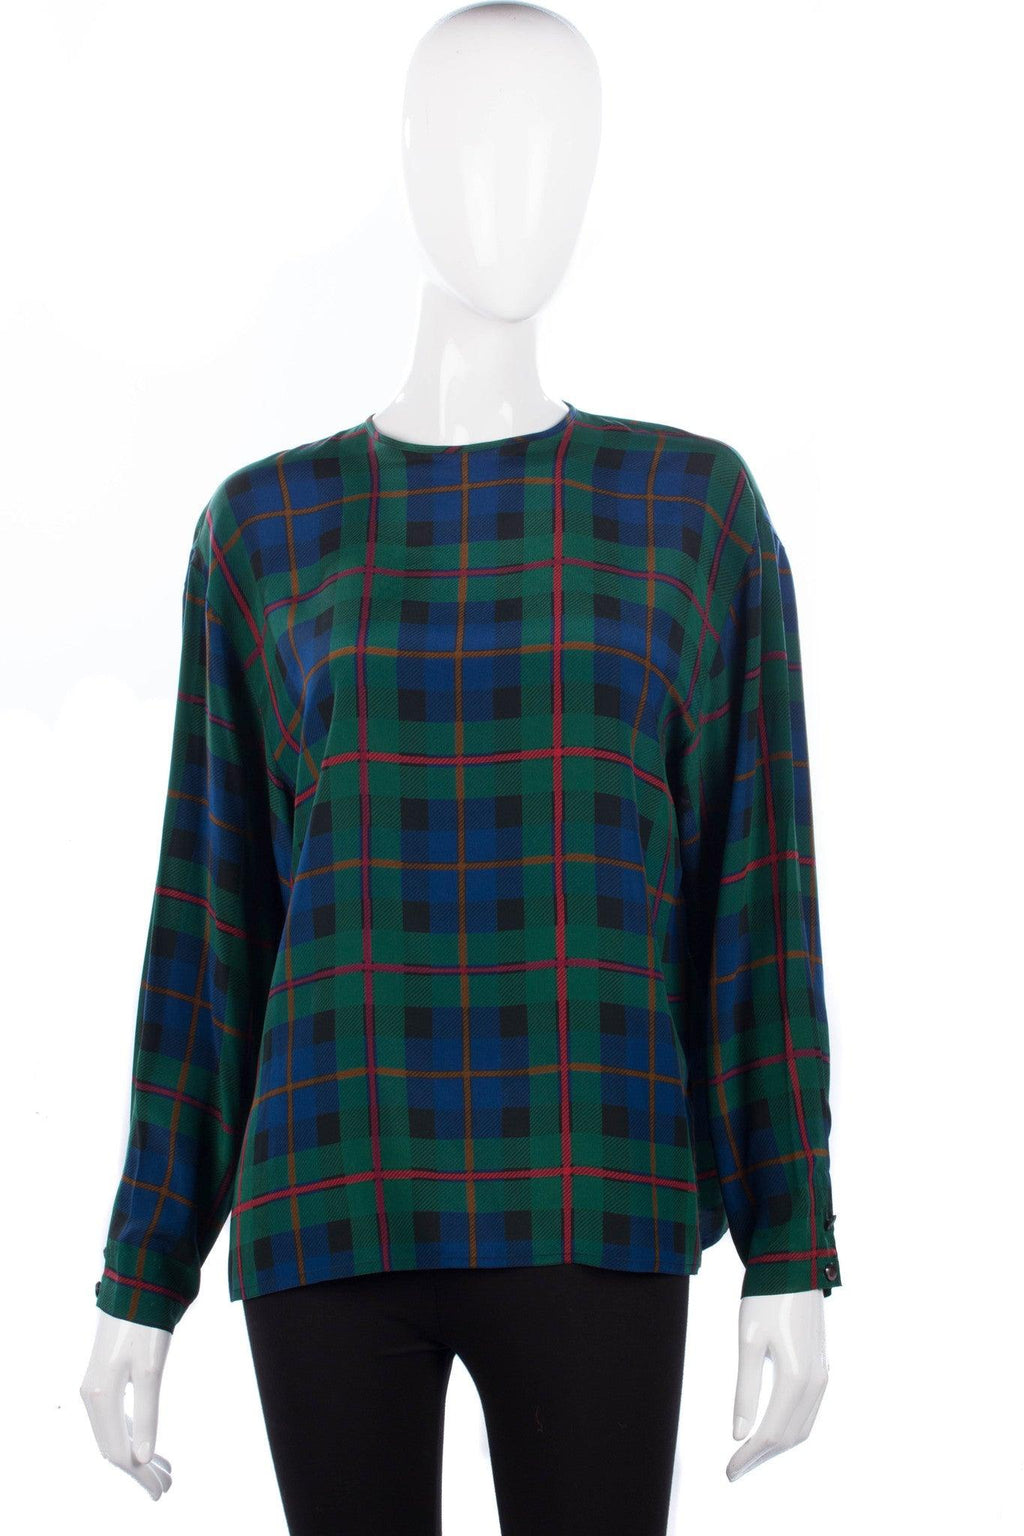 Max Mara Pure Silk Tartan Long Sleeve Top UK Size 12